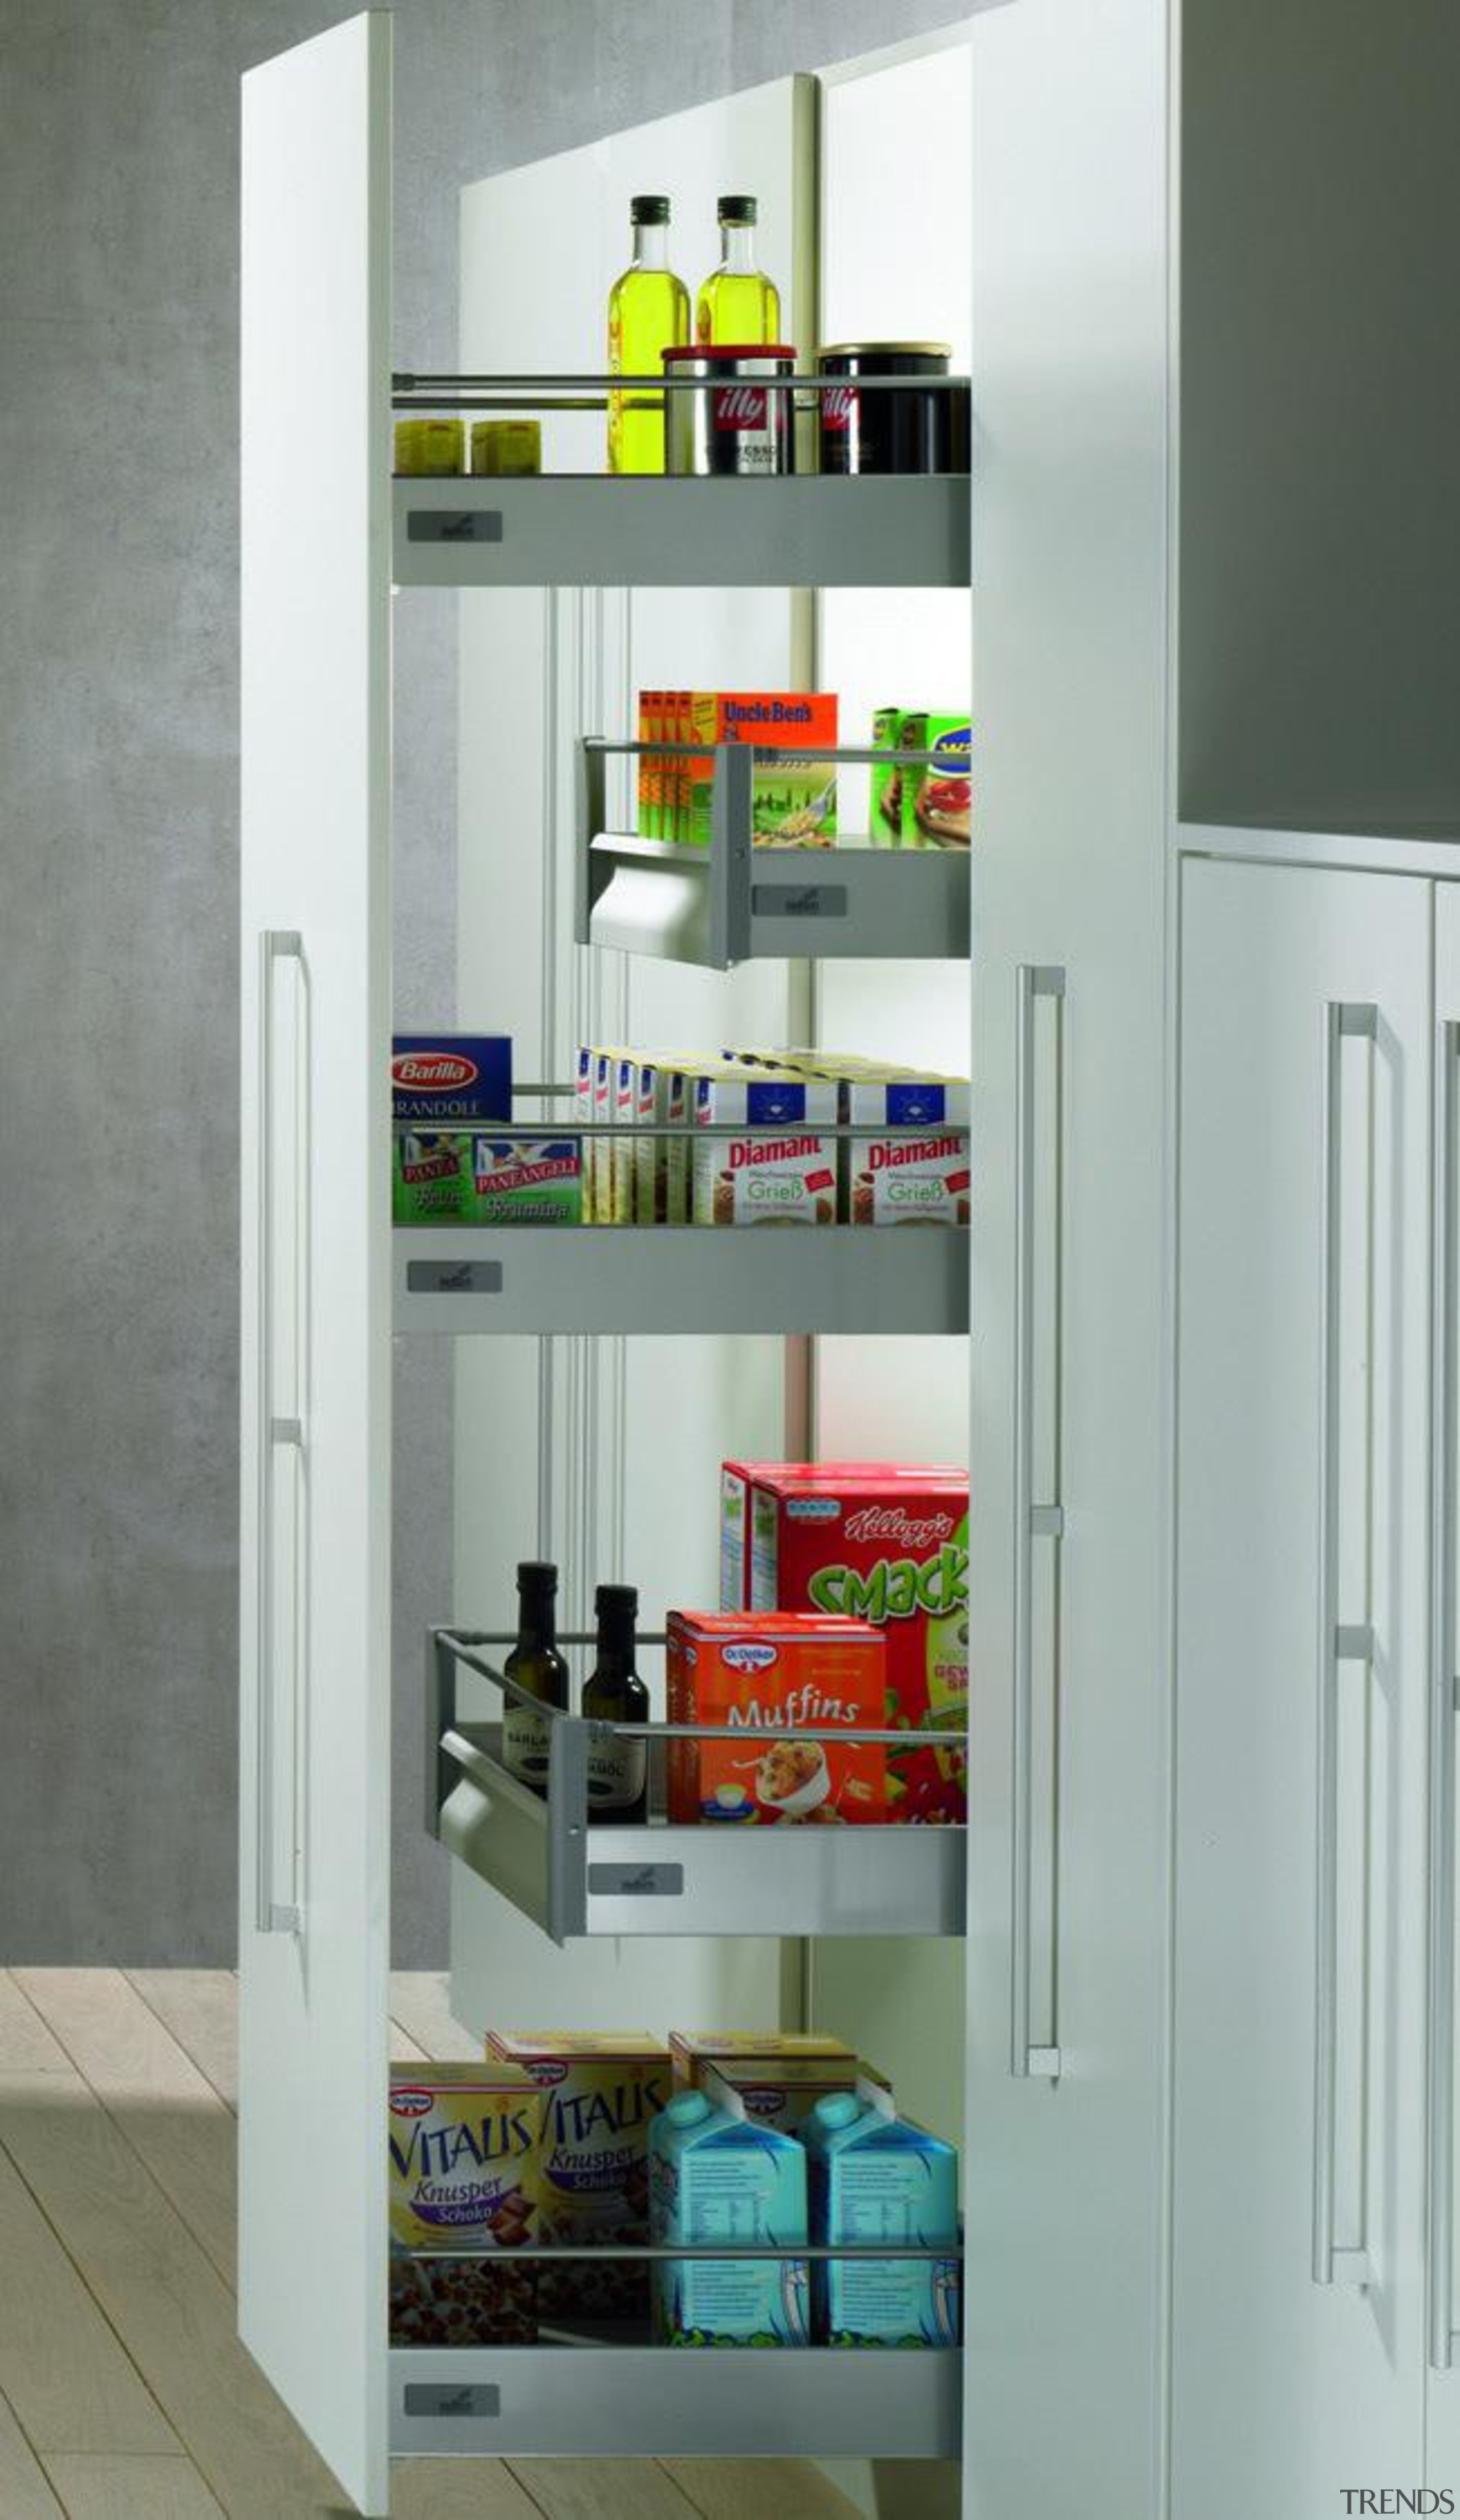 Ideal for retro-fitting cabinets and creating a pantry bookcase, display case, furniture, home appliance, pantry, product, product design, refrigerator, shelf, shelving, gray